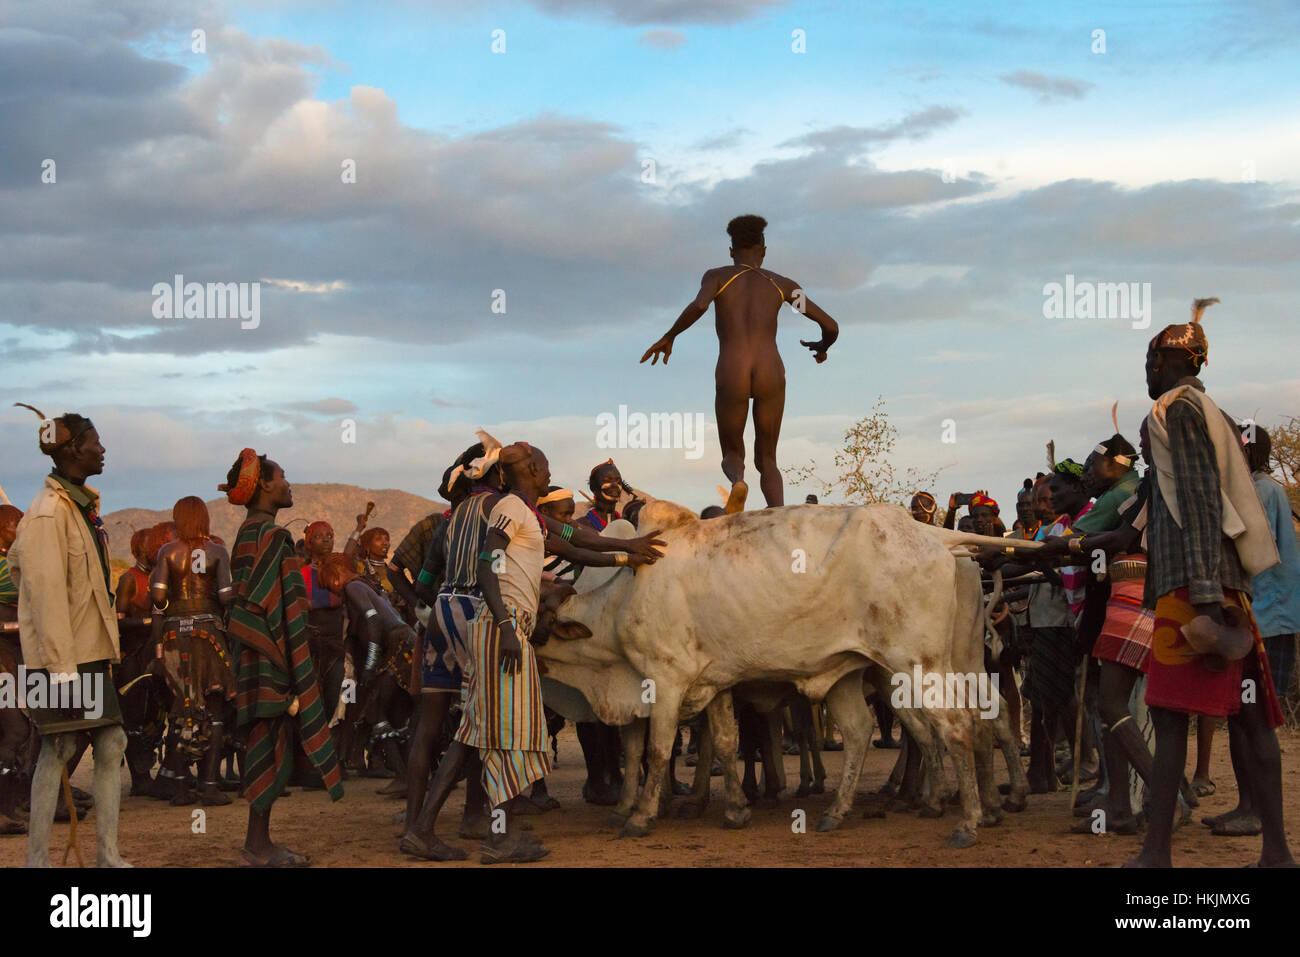 Cow Jumping Stock Photos & Cow Jumping Stock Images - Alamy